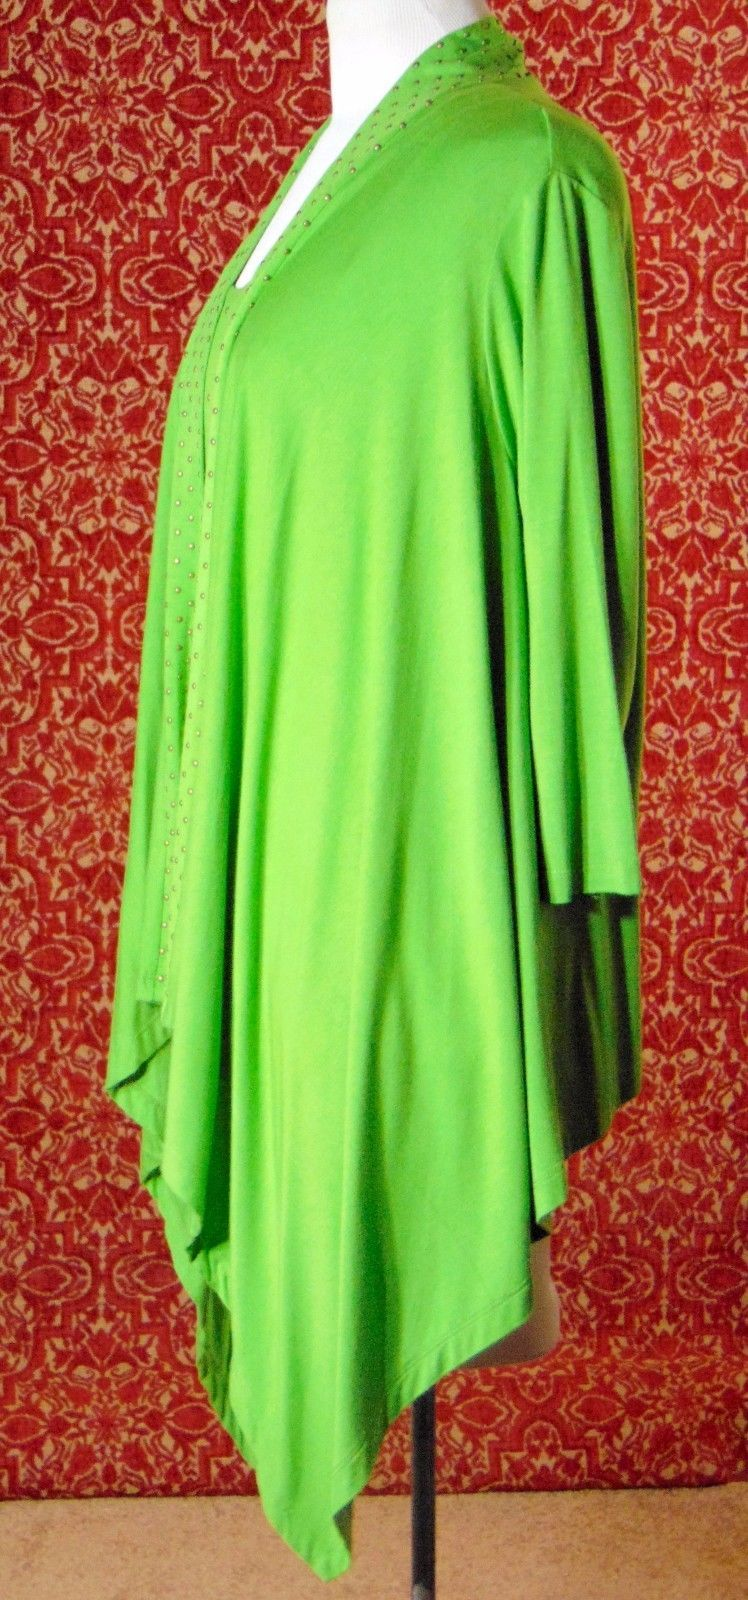 ETOILE green 2 piece stretch rayon tank blouse & sweater jacket M (T47-02I8G) image 5